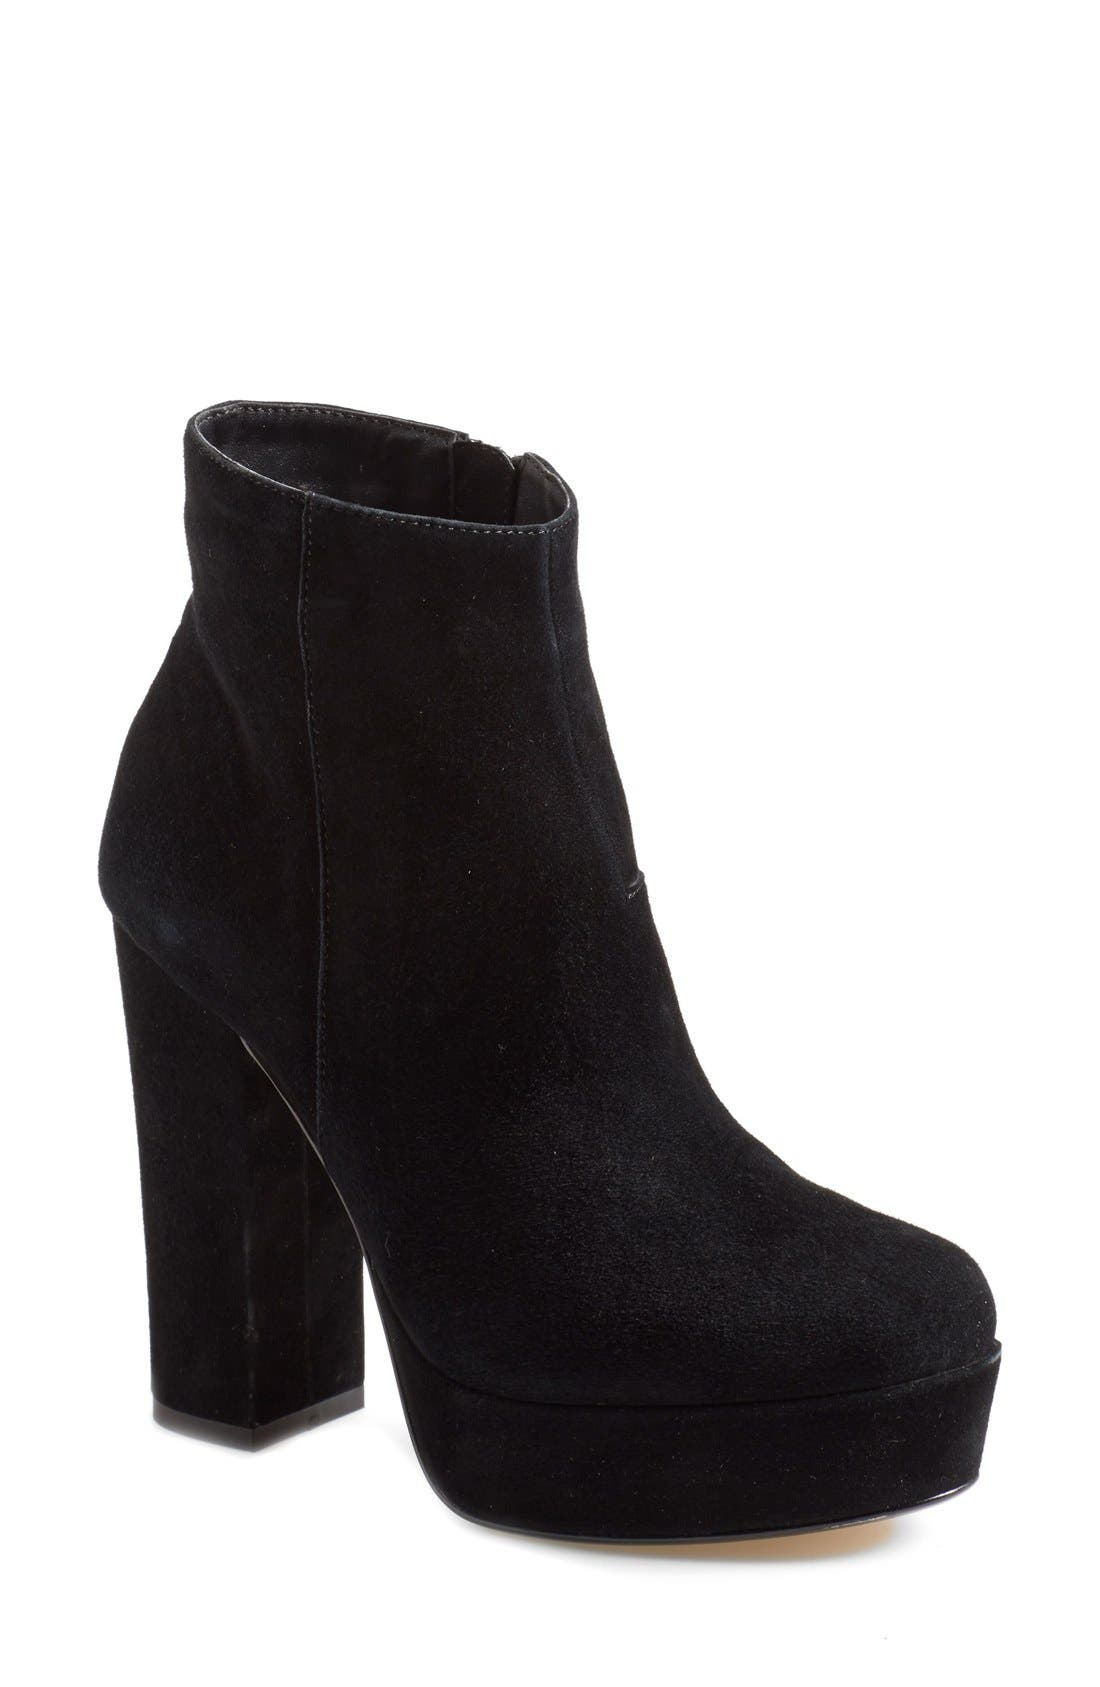 Alternate Image 1 Selected - Steve Madden 'Joanie' Platform Bootie (Women)